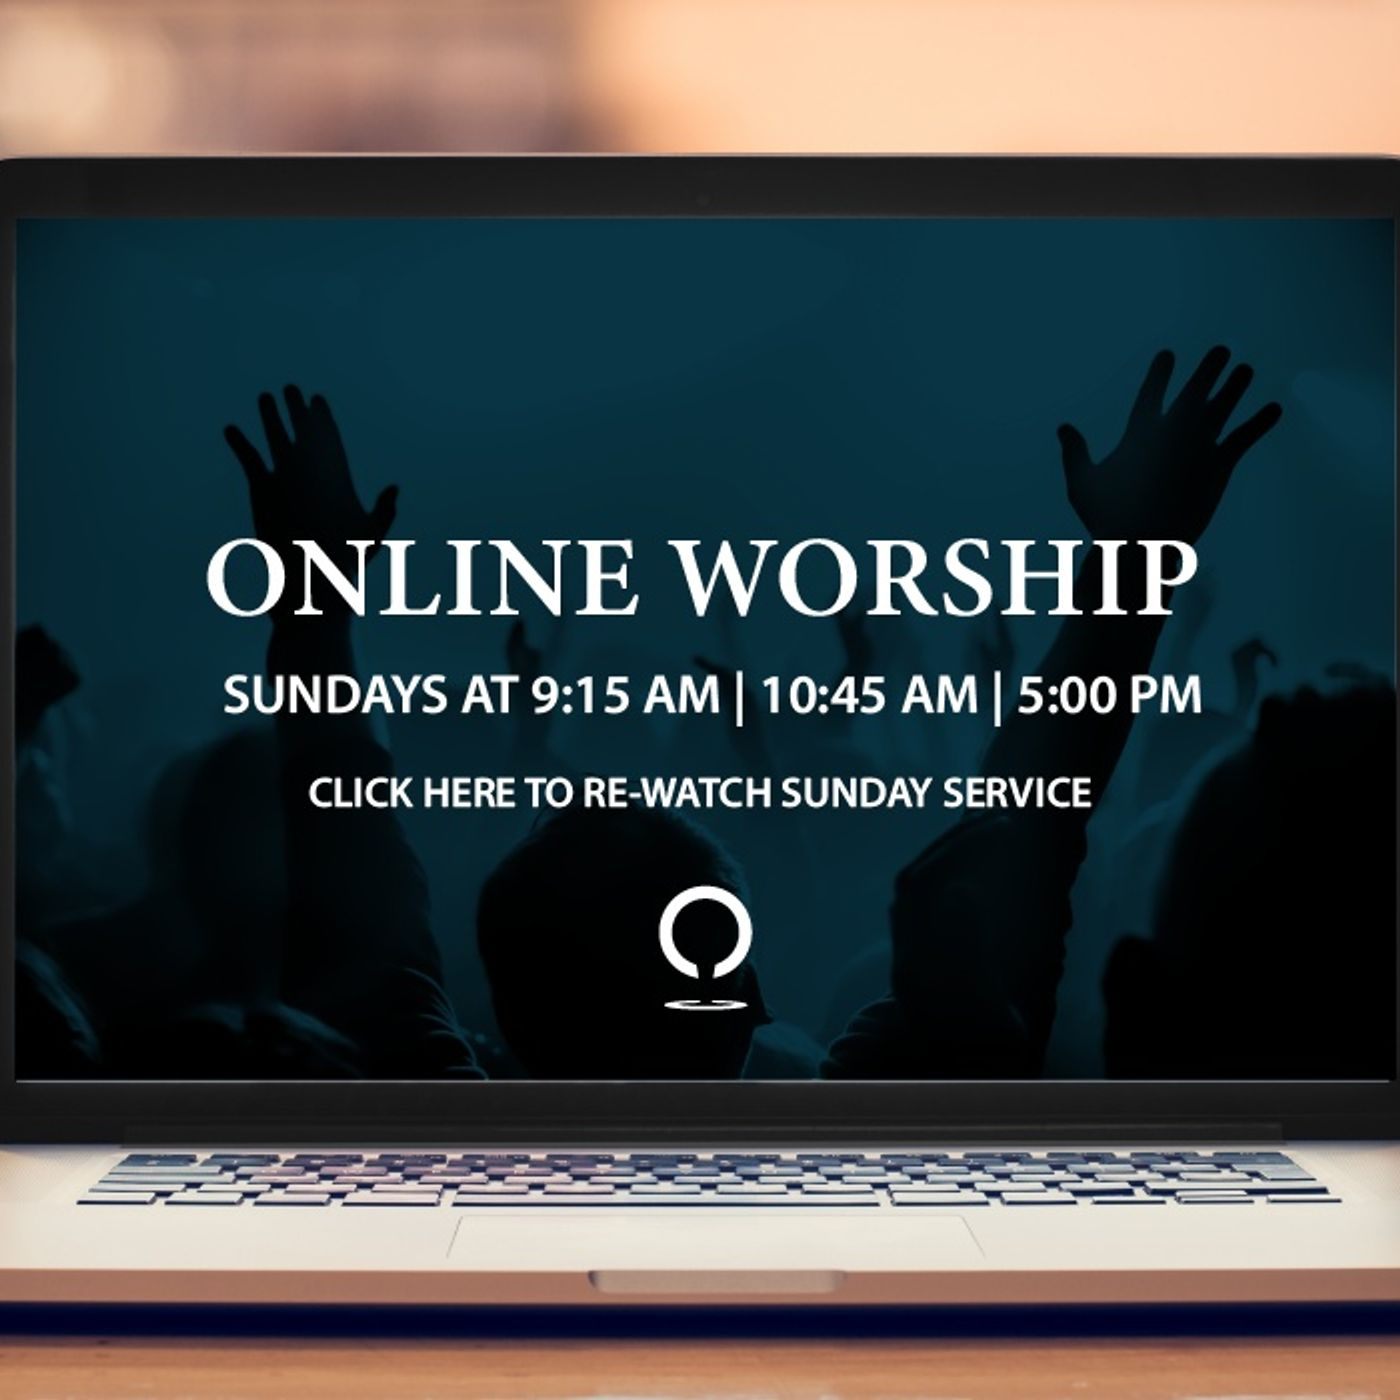 Christians Are Not Viewing Services Online during Covid-19